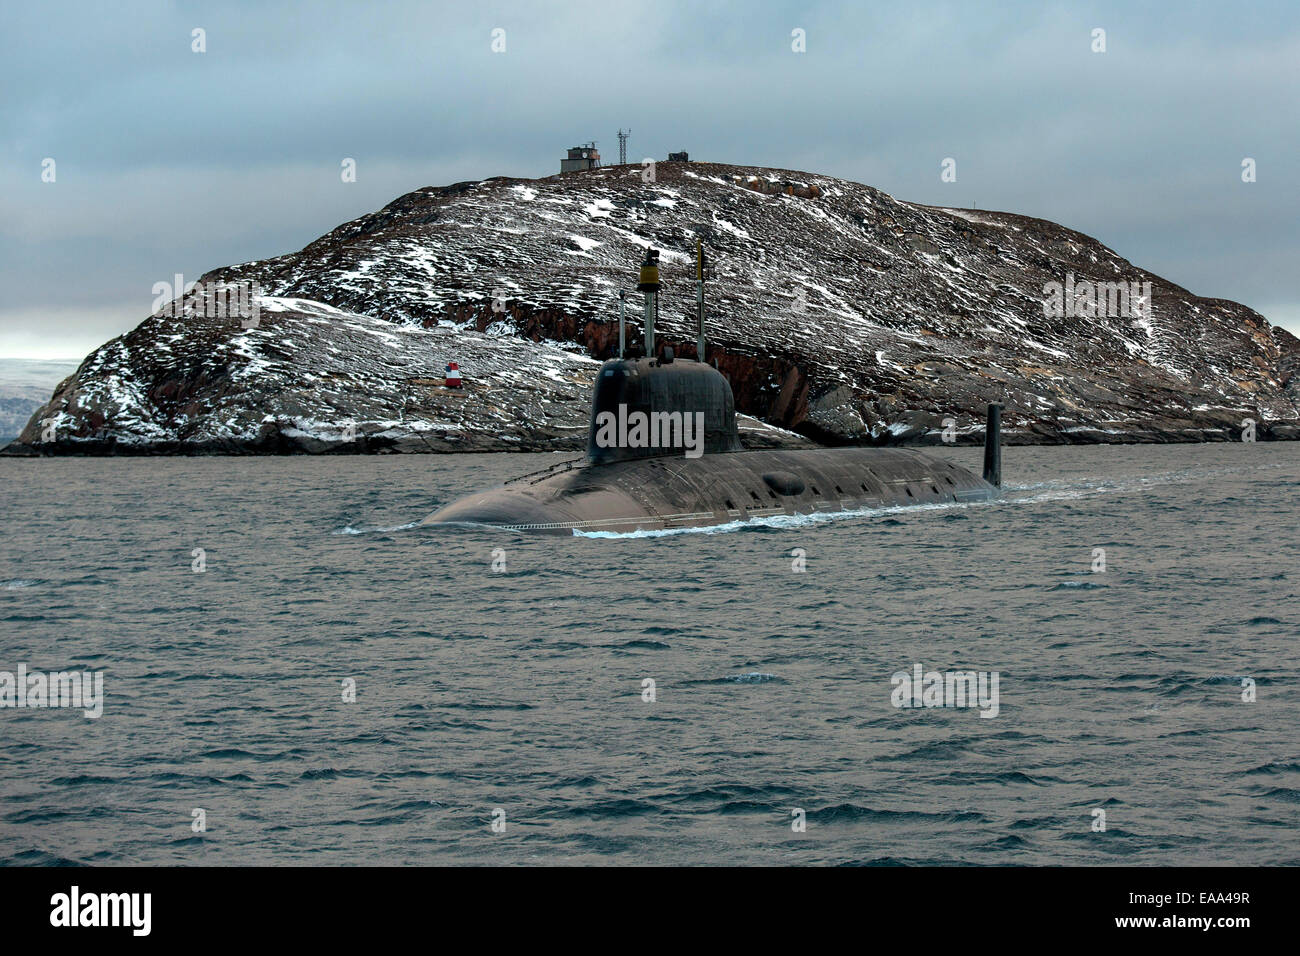 Murmansk Region, Russia. 10th Nov, 2014. The Russian Northern Fleet's Severodvinsk nuclear submarine during - Stock Image